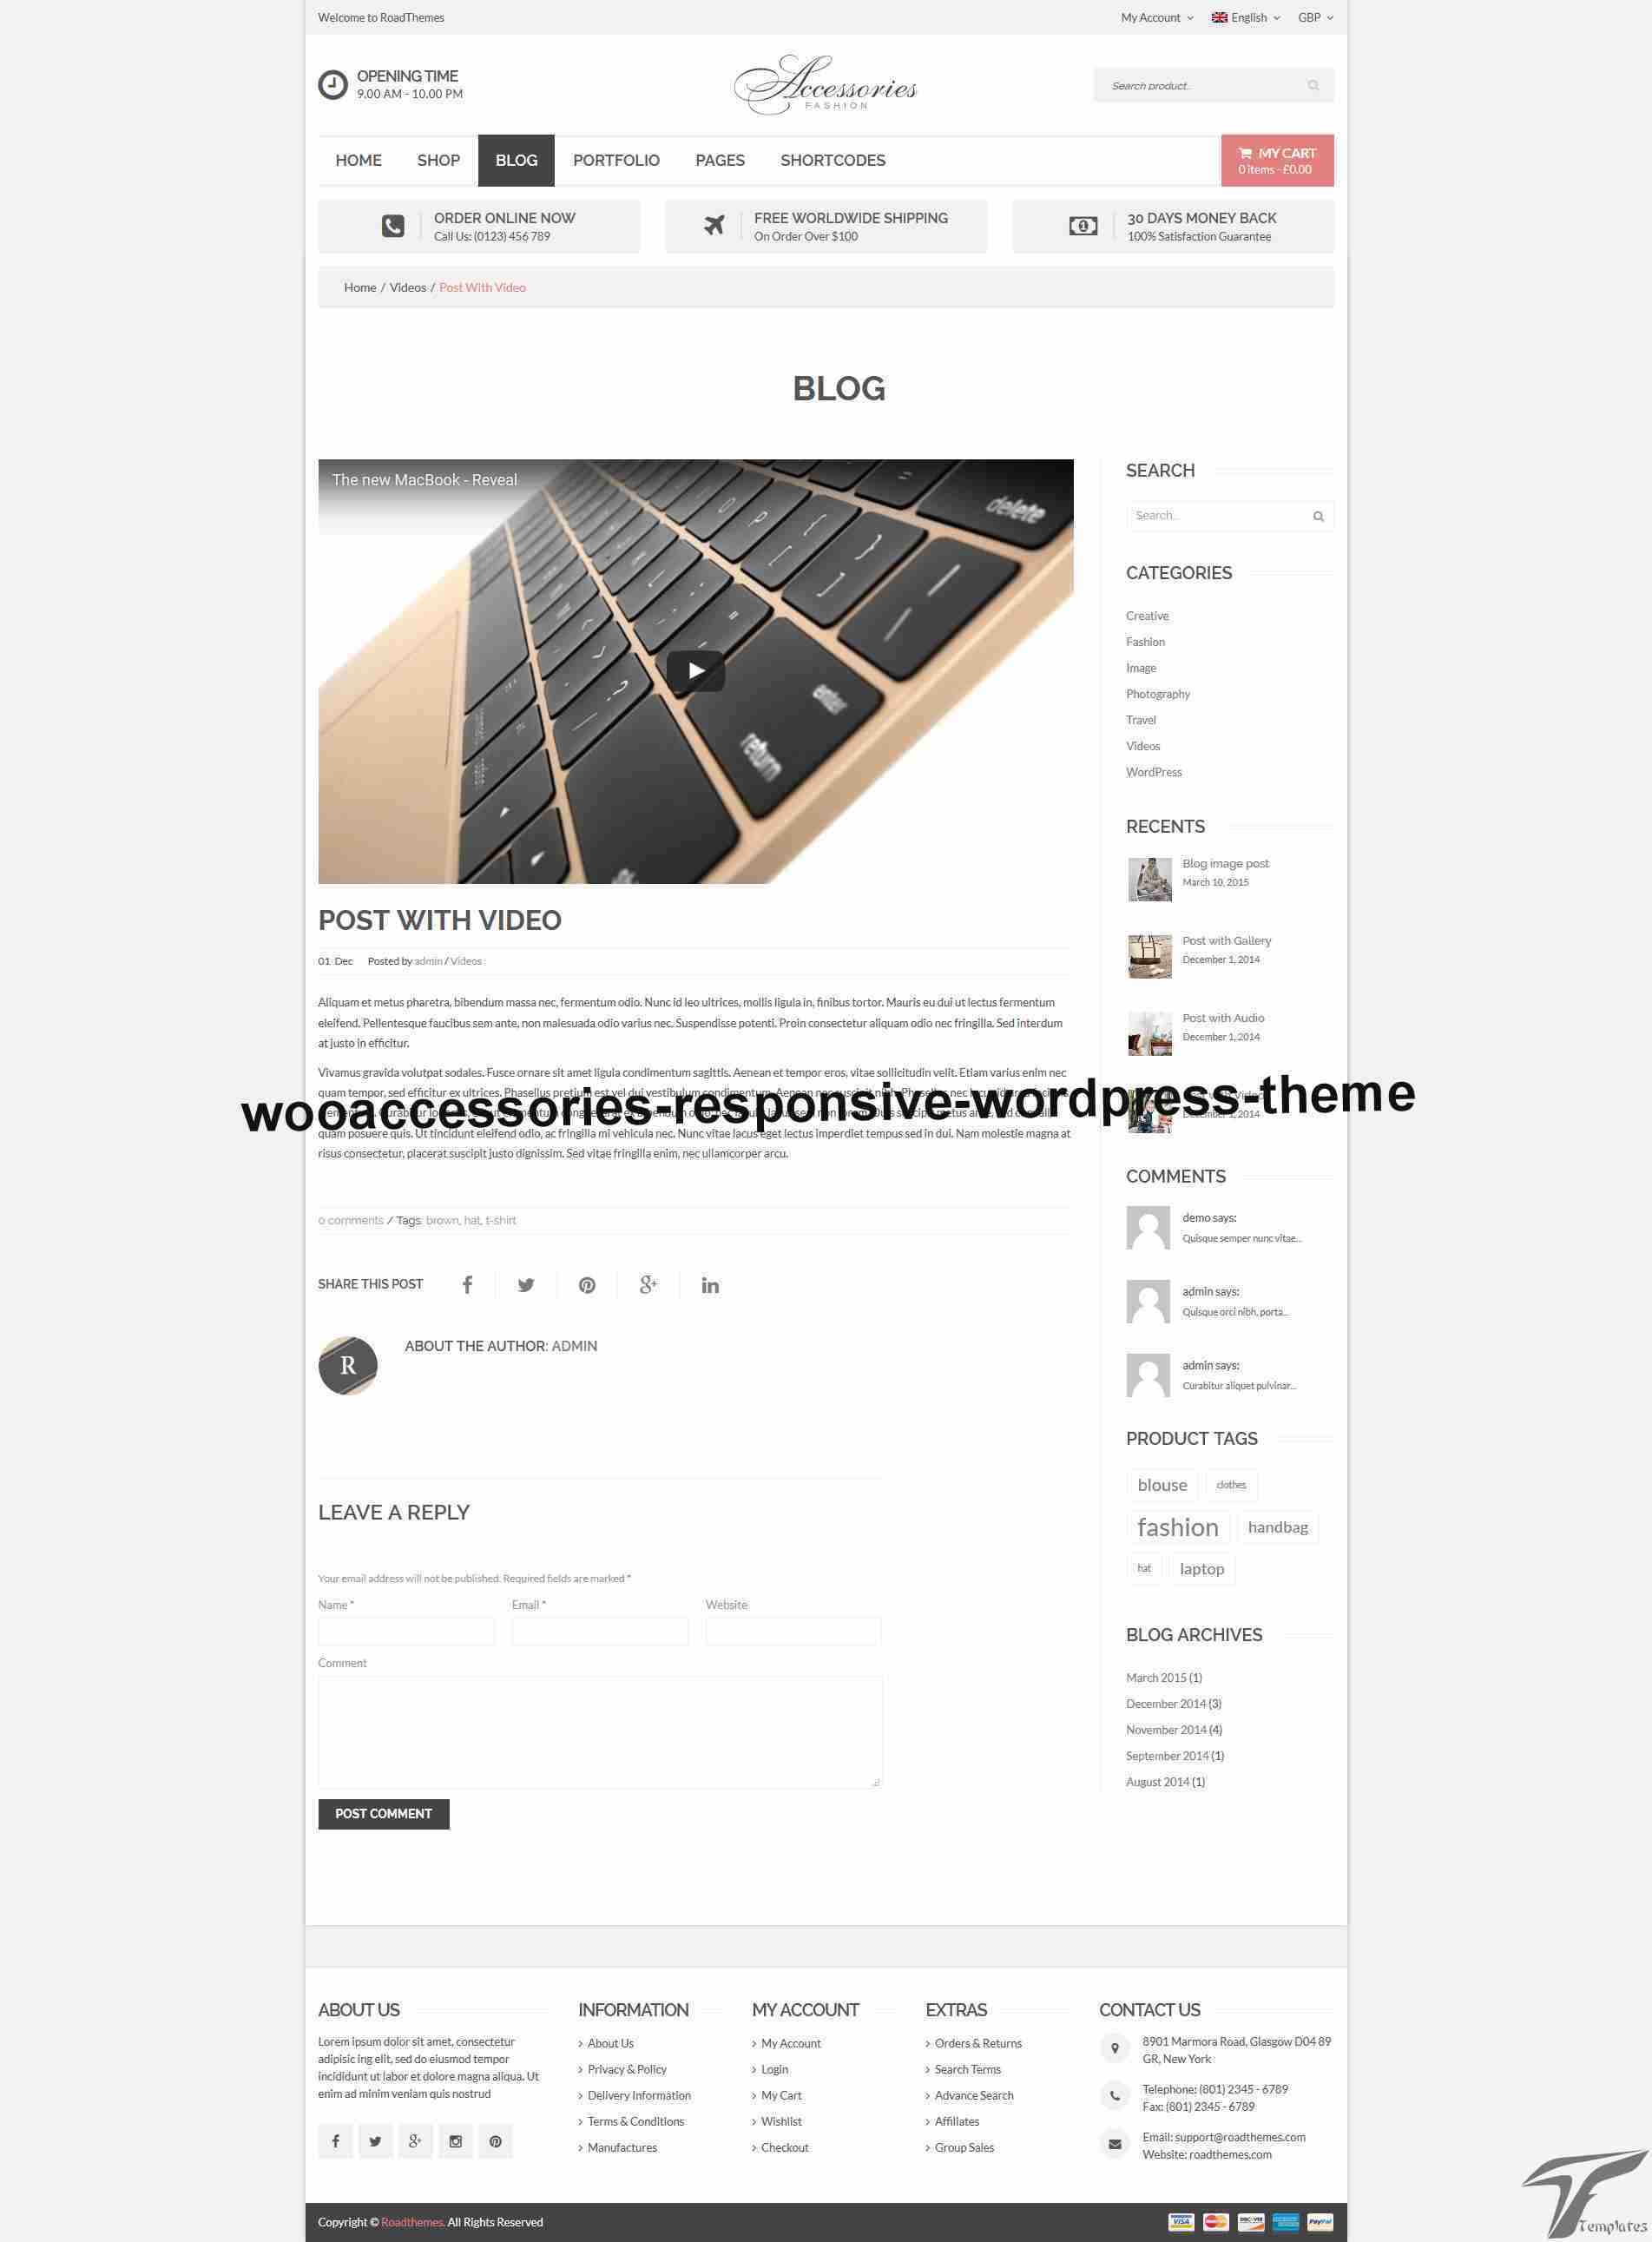 https://images.besthemes.com/images/h1_wooaccessories-responsive-wordpress-theme13-_-198839662/preview_images/13_post_video.jpg